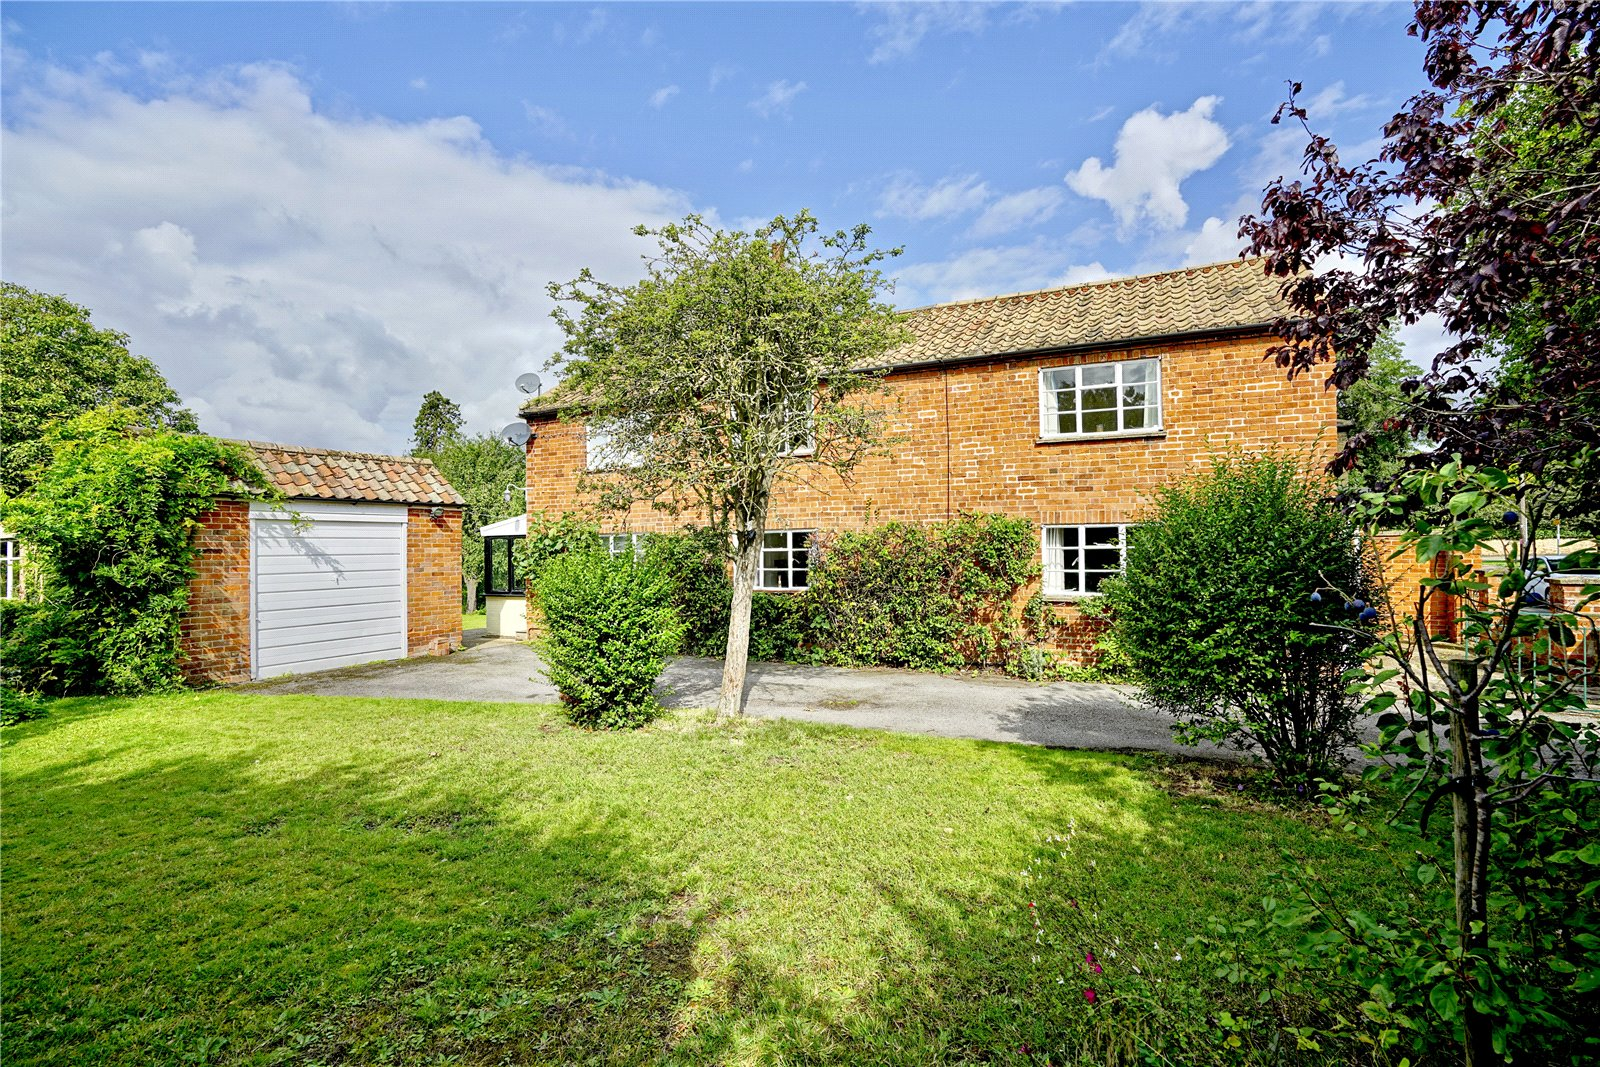 4 bed house for sale in Buckden  - Property Image 6